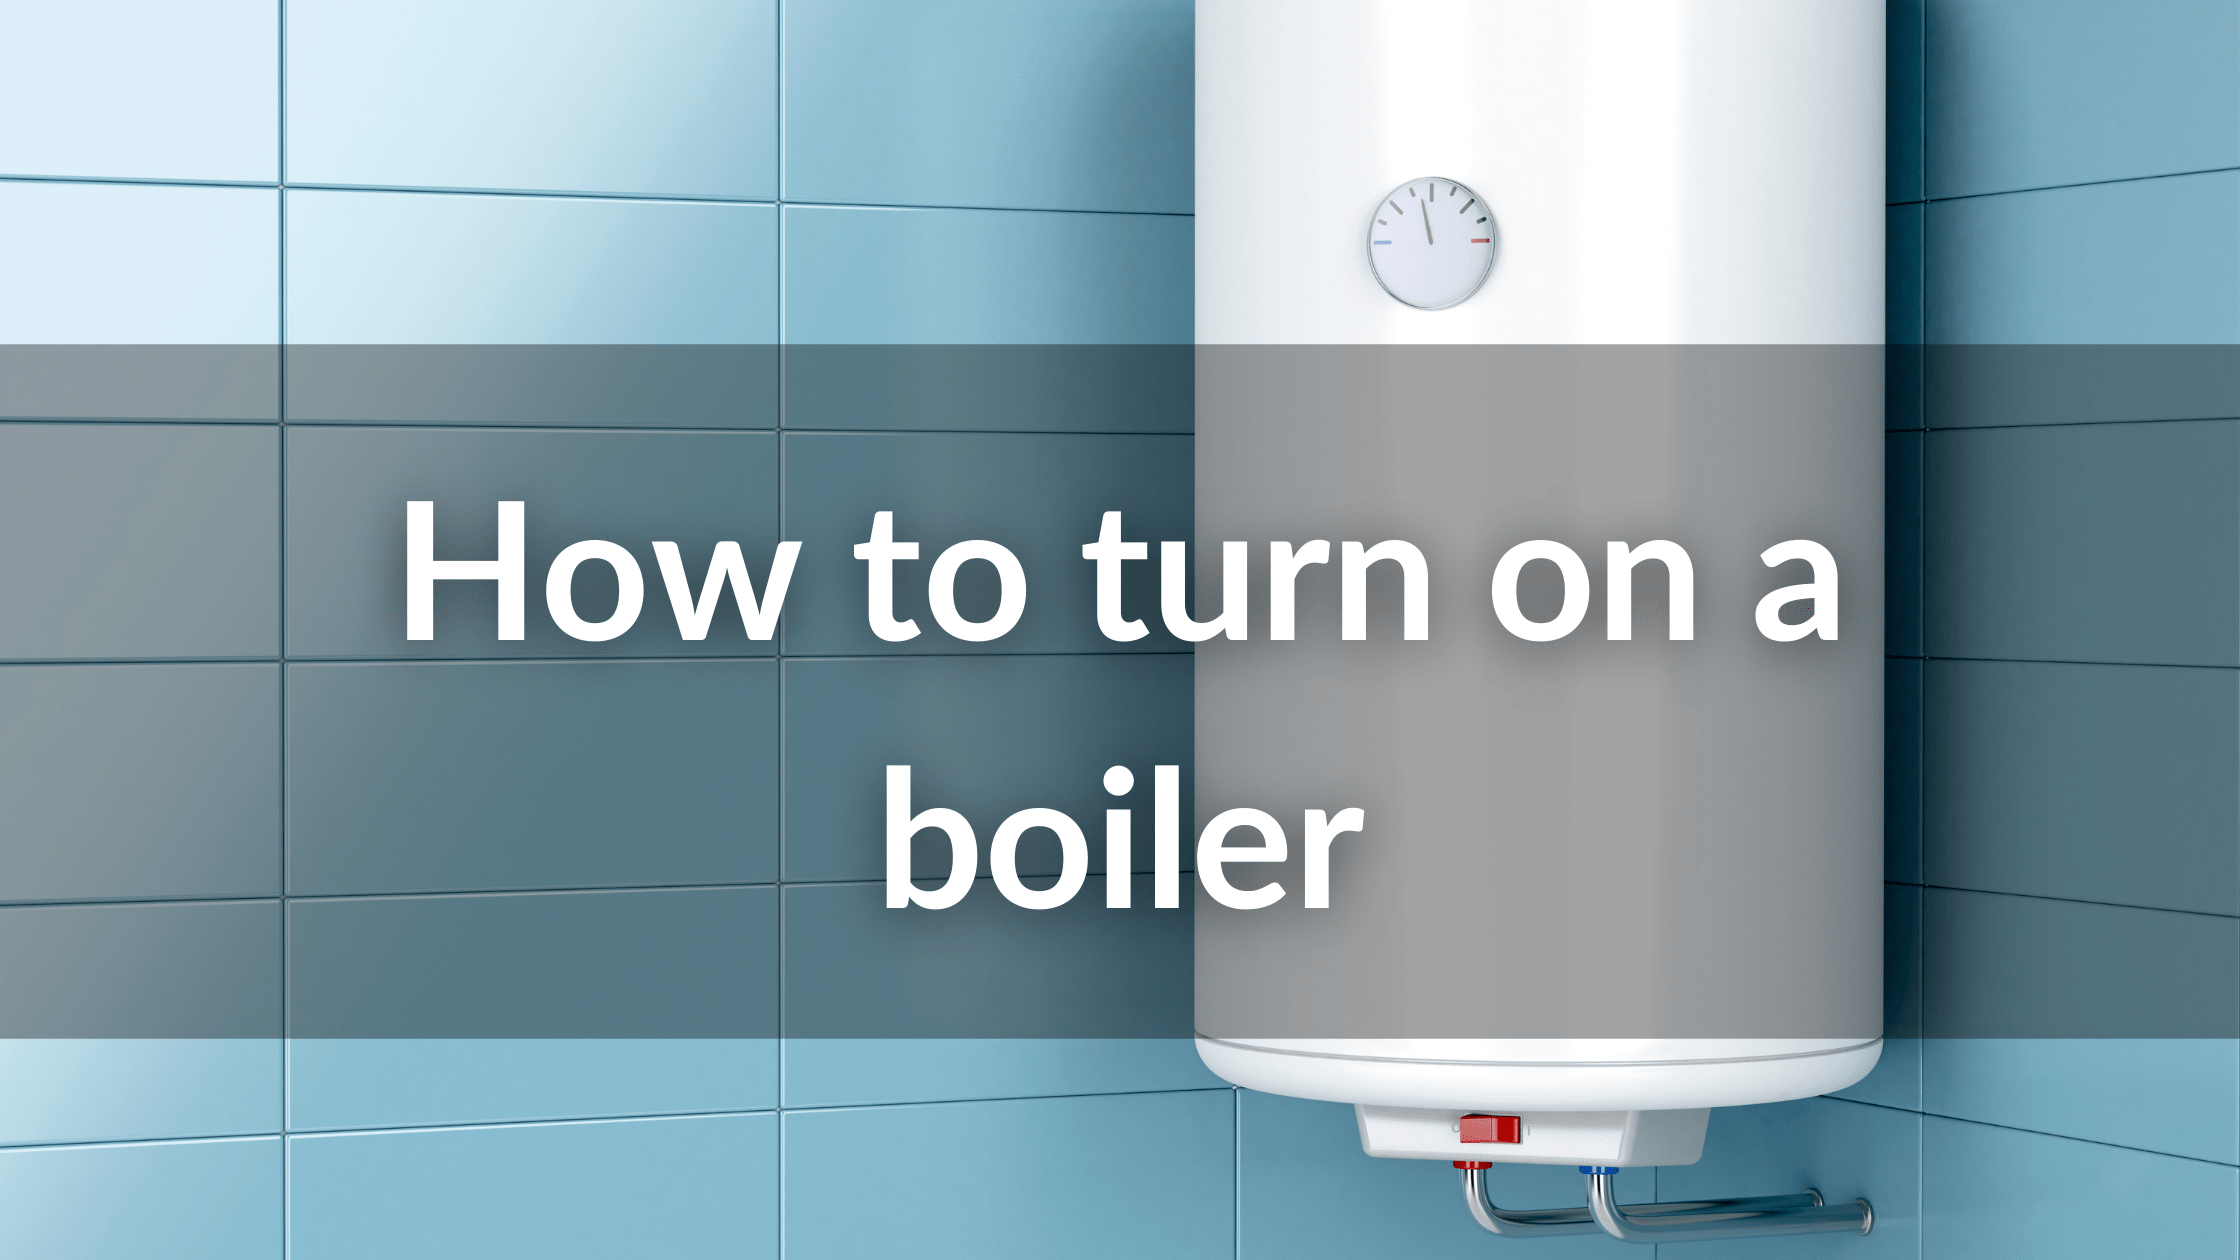 How to turn on a boiler